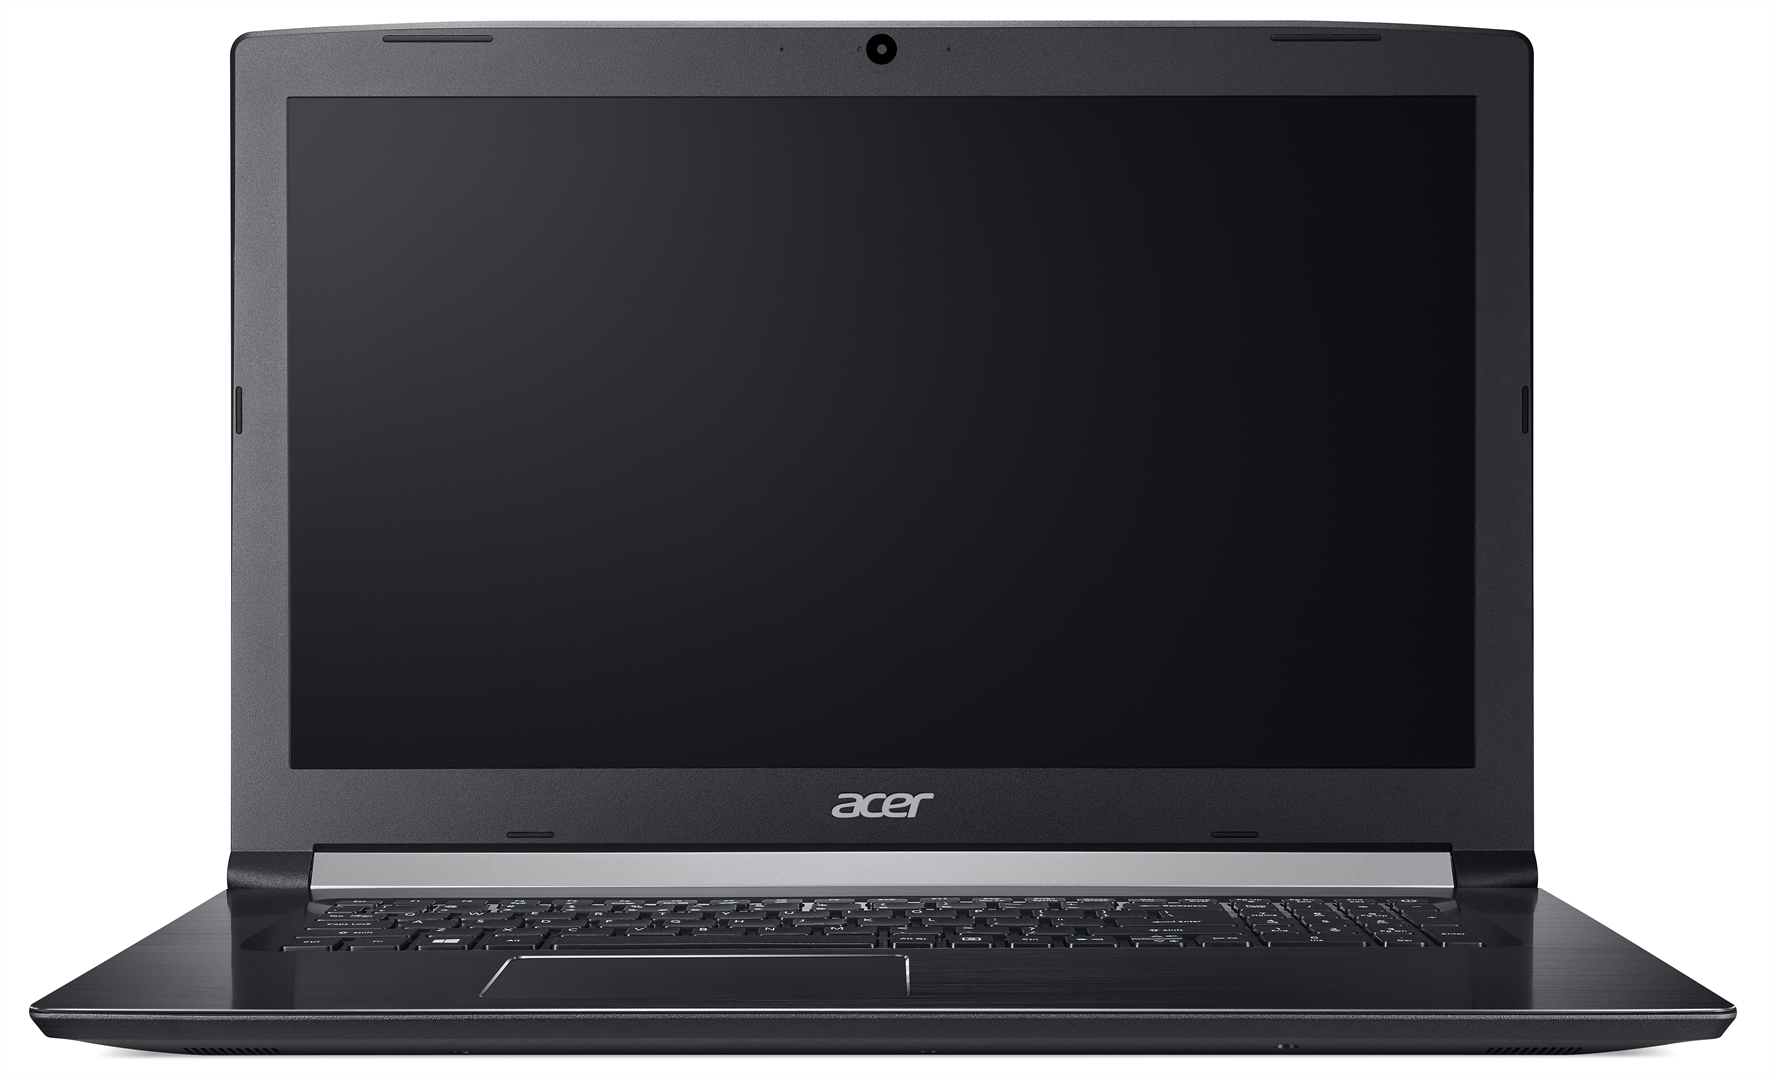 ACER EXTENSA 6700Z BLUETOOTH WINDOWS 7 64BIT DRIVER DOWNLOAD